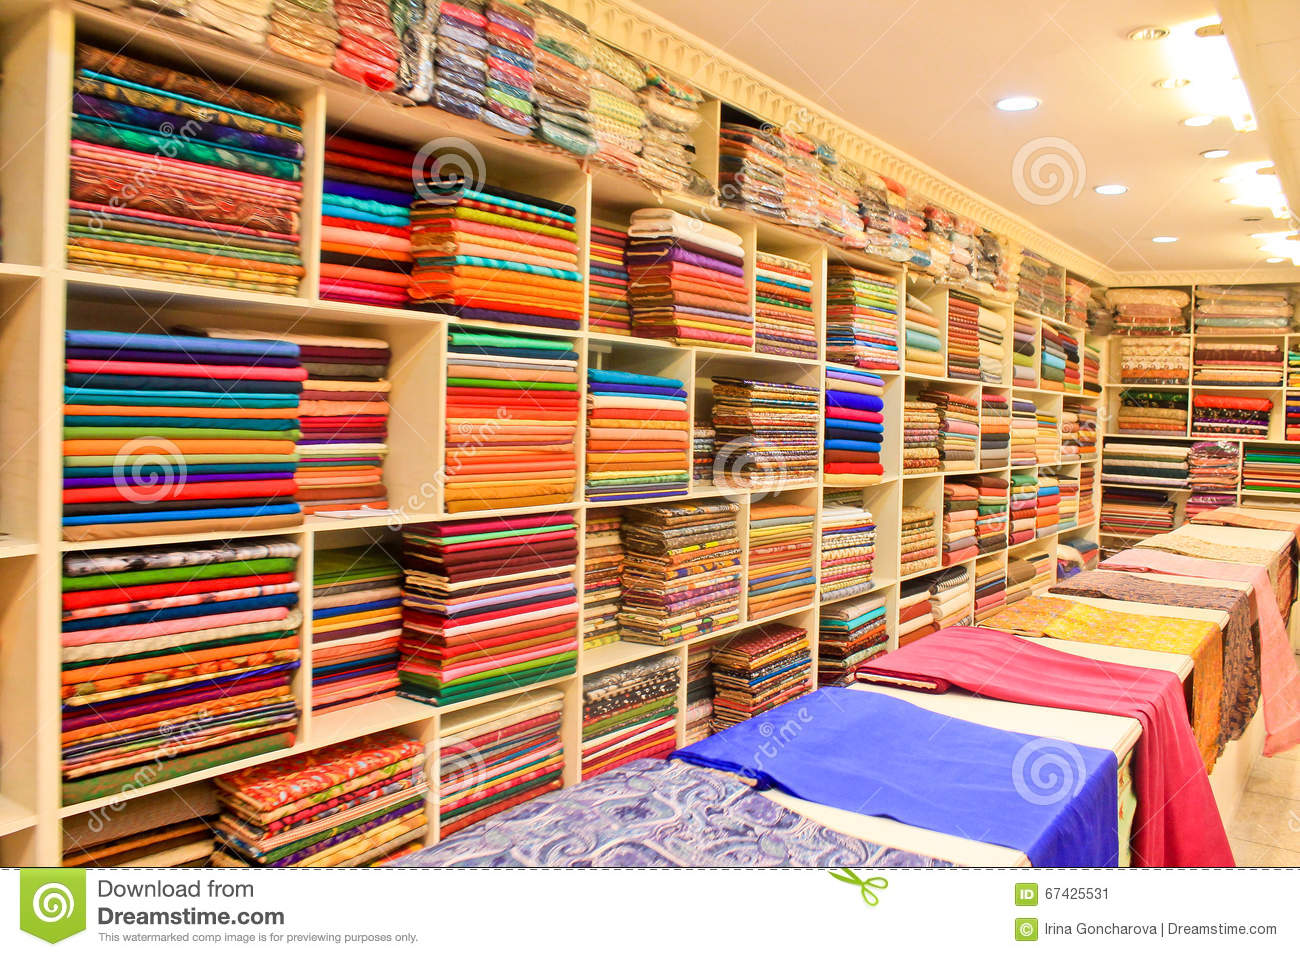 The fabric store stock image  Image of canvas, india - 67425531